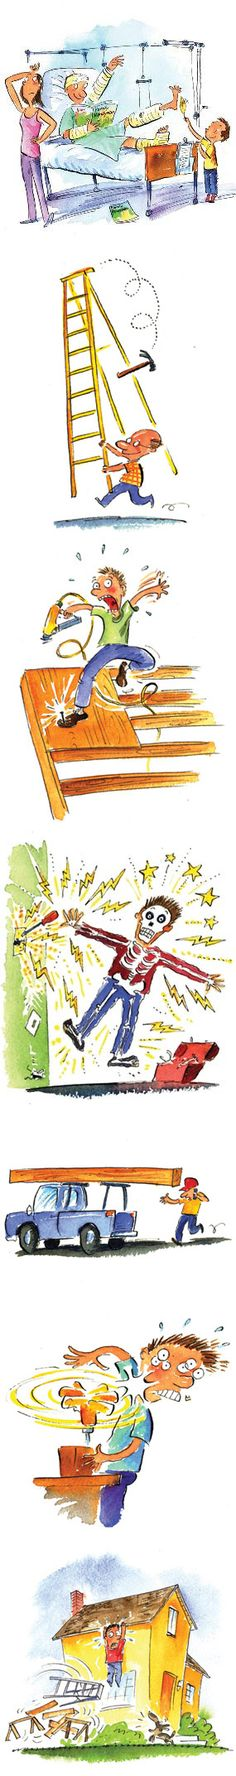 Don't end up in the hospital like this guy. Our staff and field editors tell of the DIY mistakes they've made and the lessons learned from ladders, electricity, roofs, power nailers, drills, pressure washers and more. Learn from their mistakes at http://www.familyhandyman.com/DIY-Projects/Home-Safety/Working-Safely/diy-safety-tips